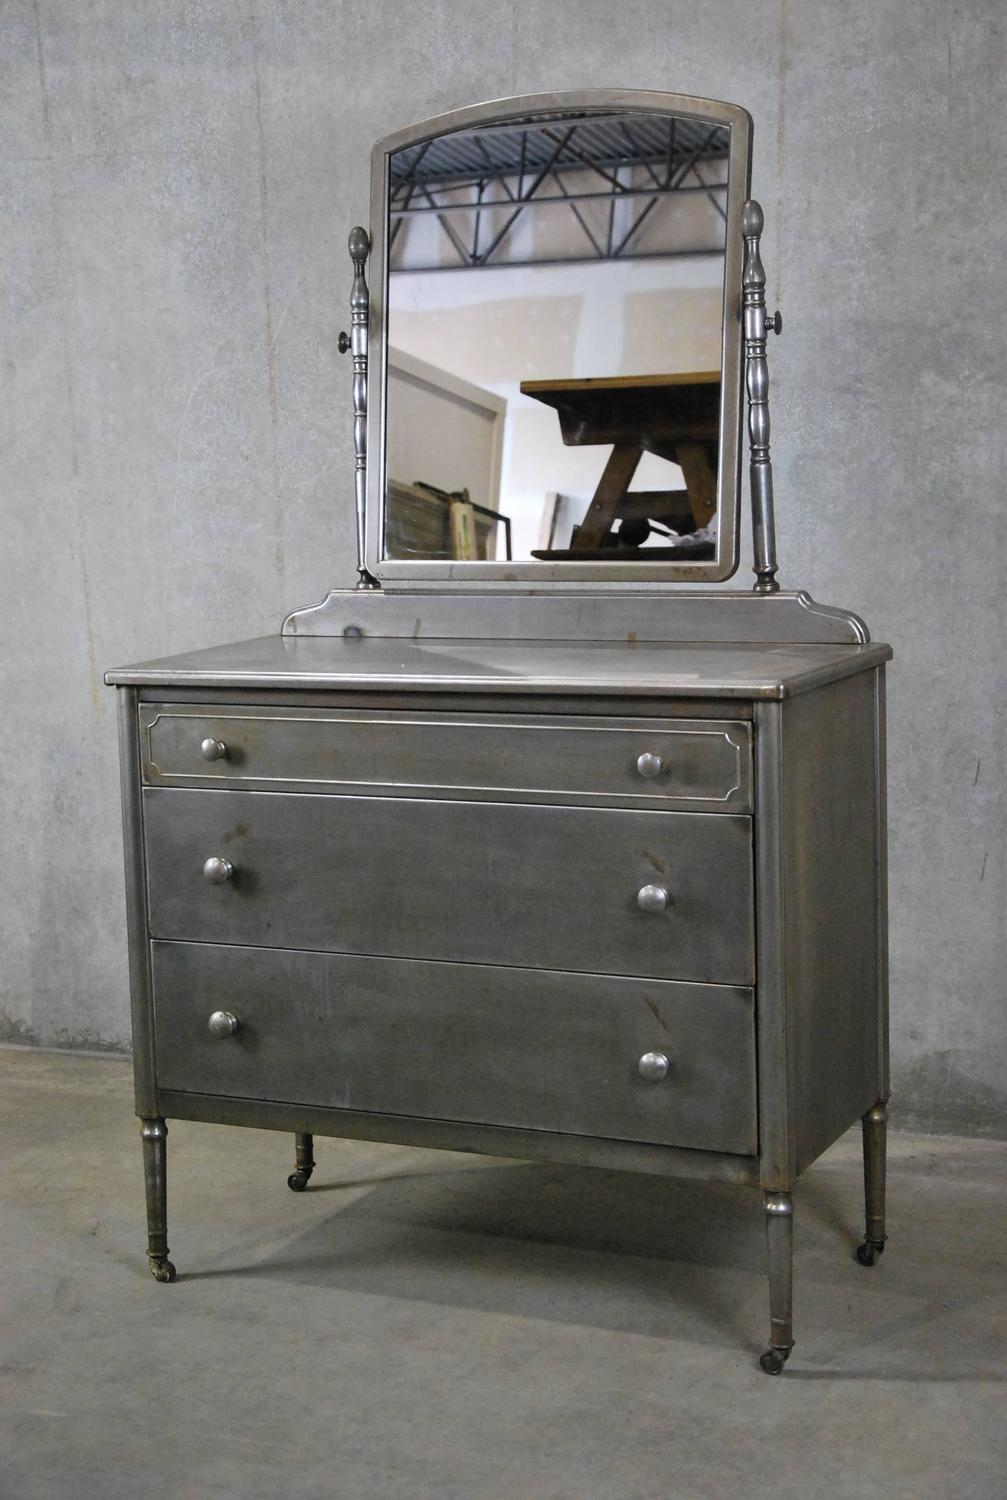 1930 Simmons Metal Low Boy Dresser At 1stdibs